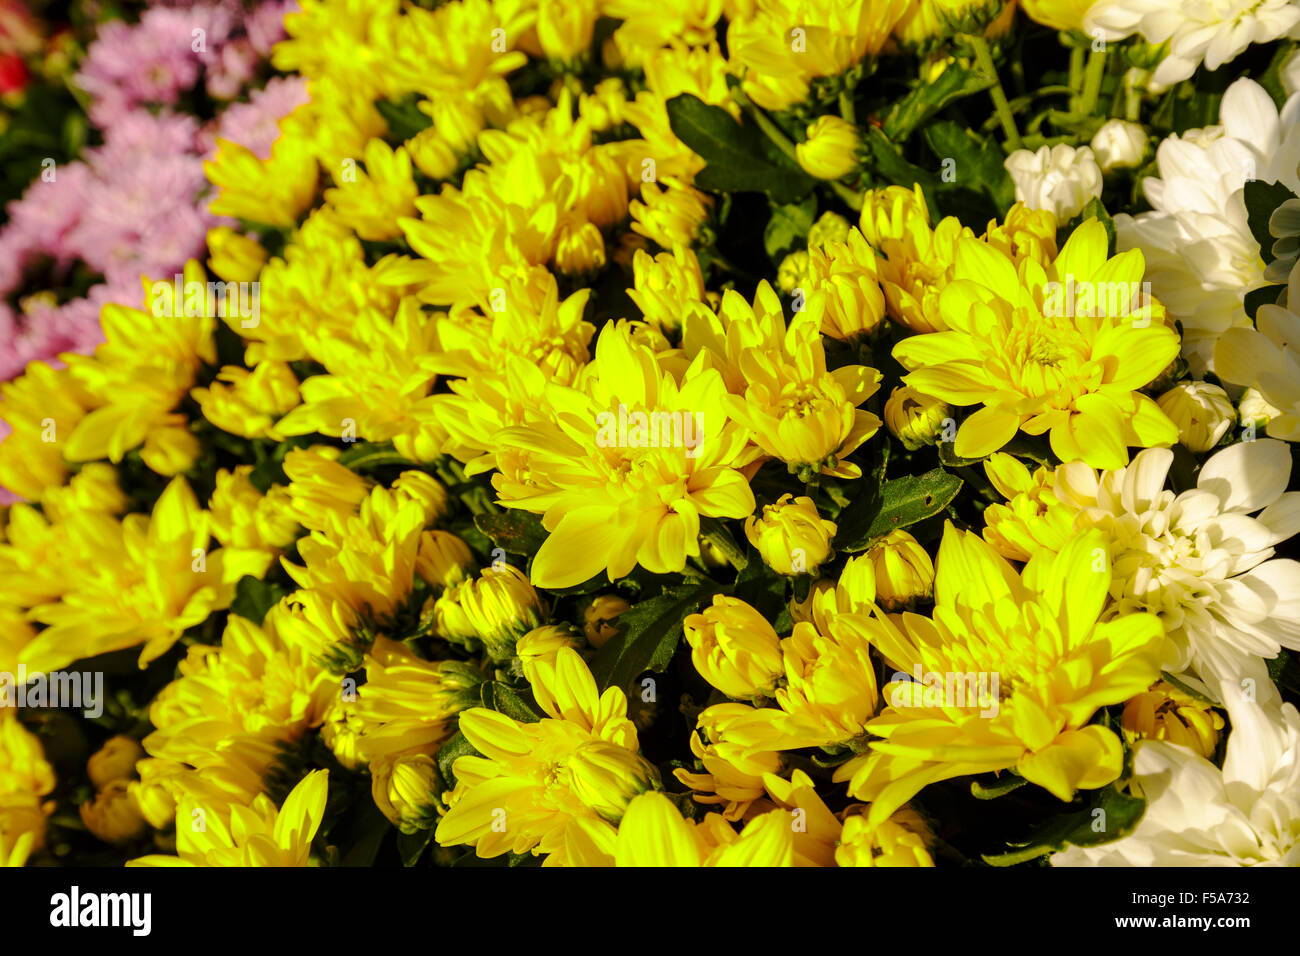 Yellow Aster Flowers Background Stock Photo 89350214 Alamy